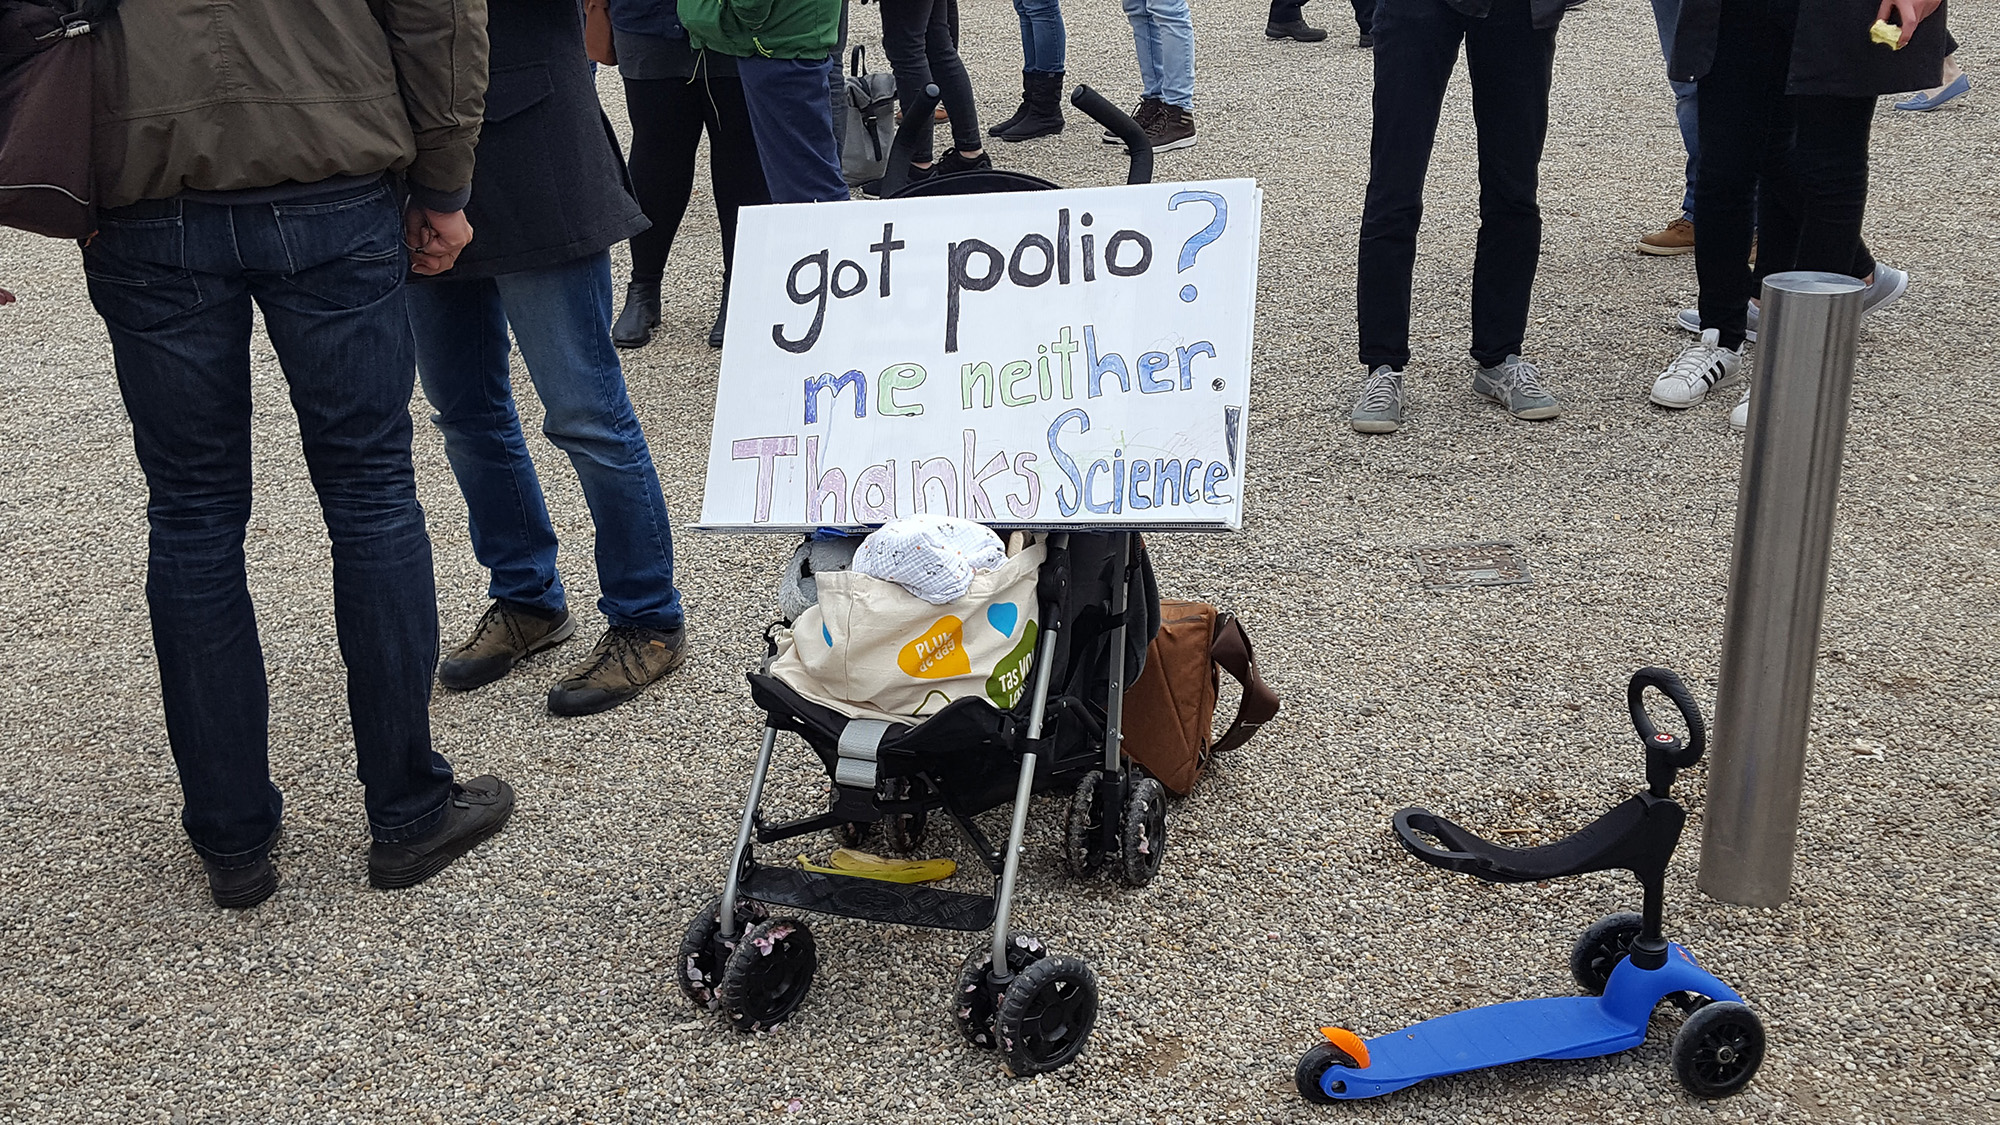 march for science 22 april musemplein polio